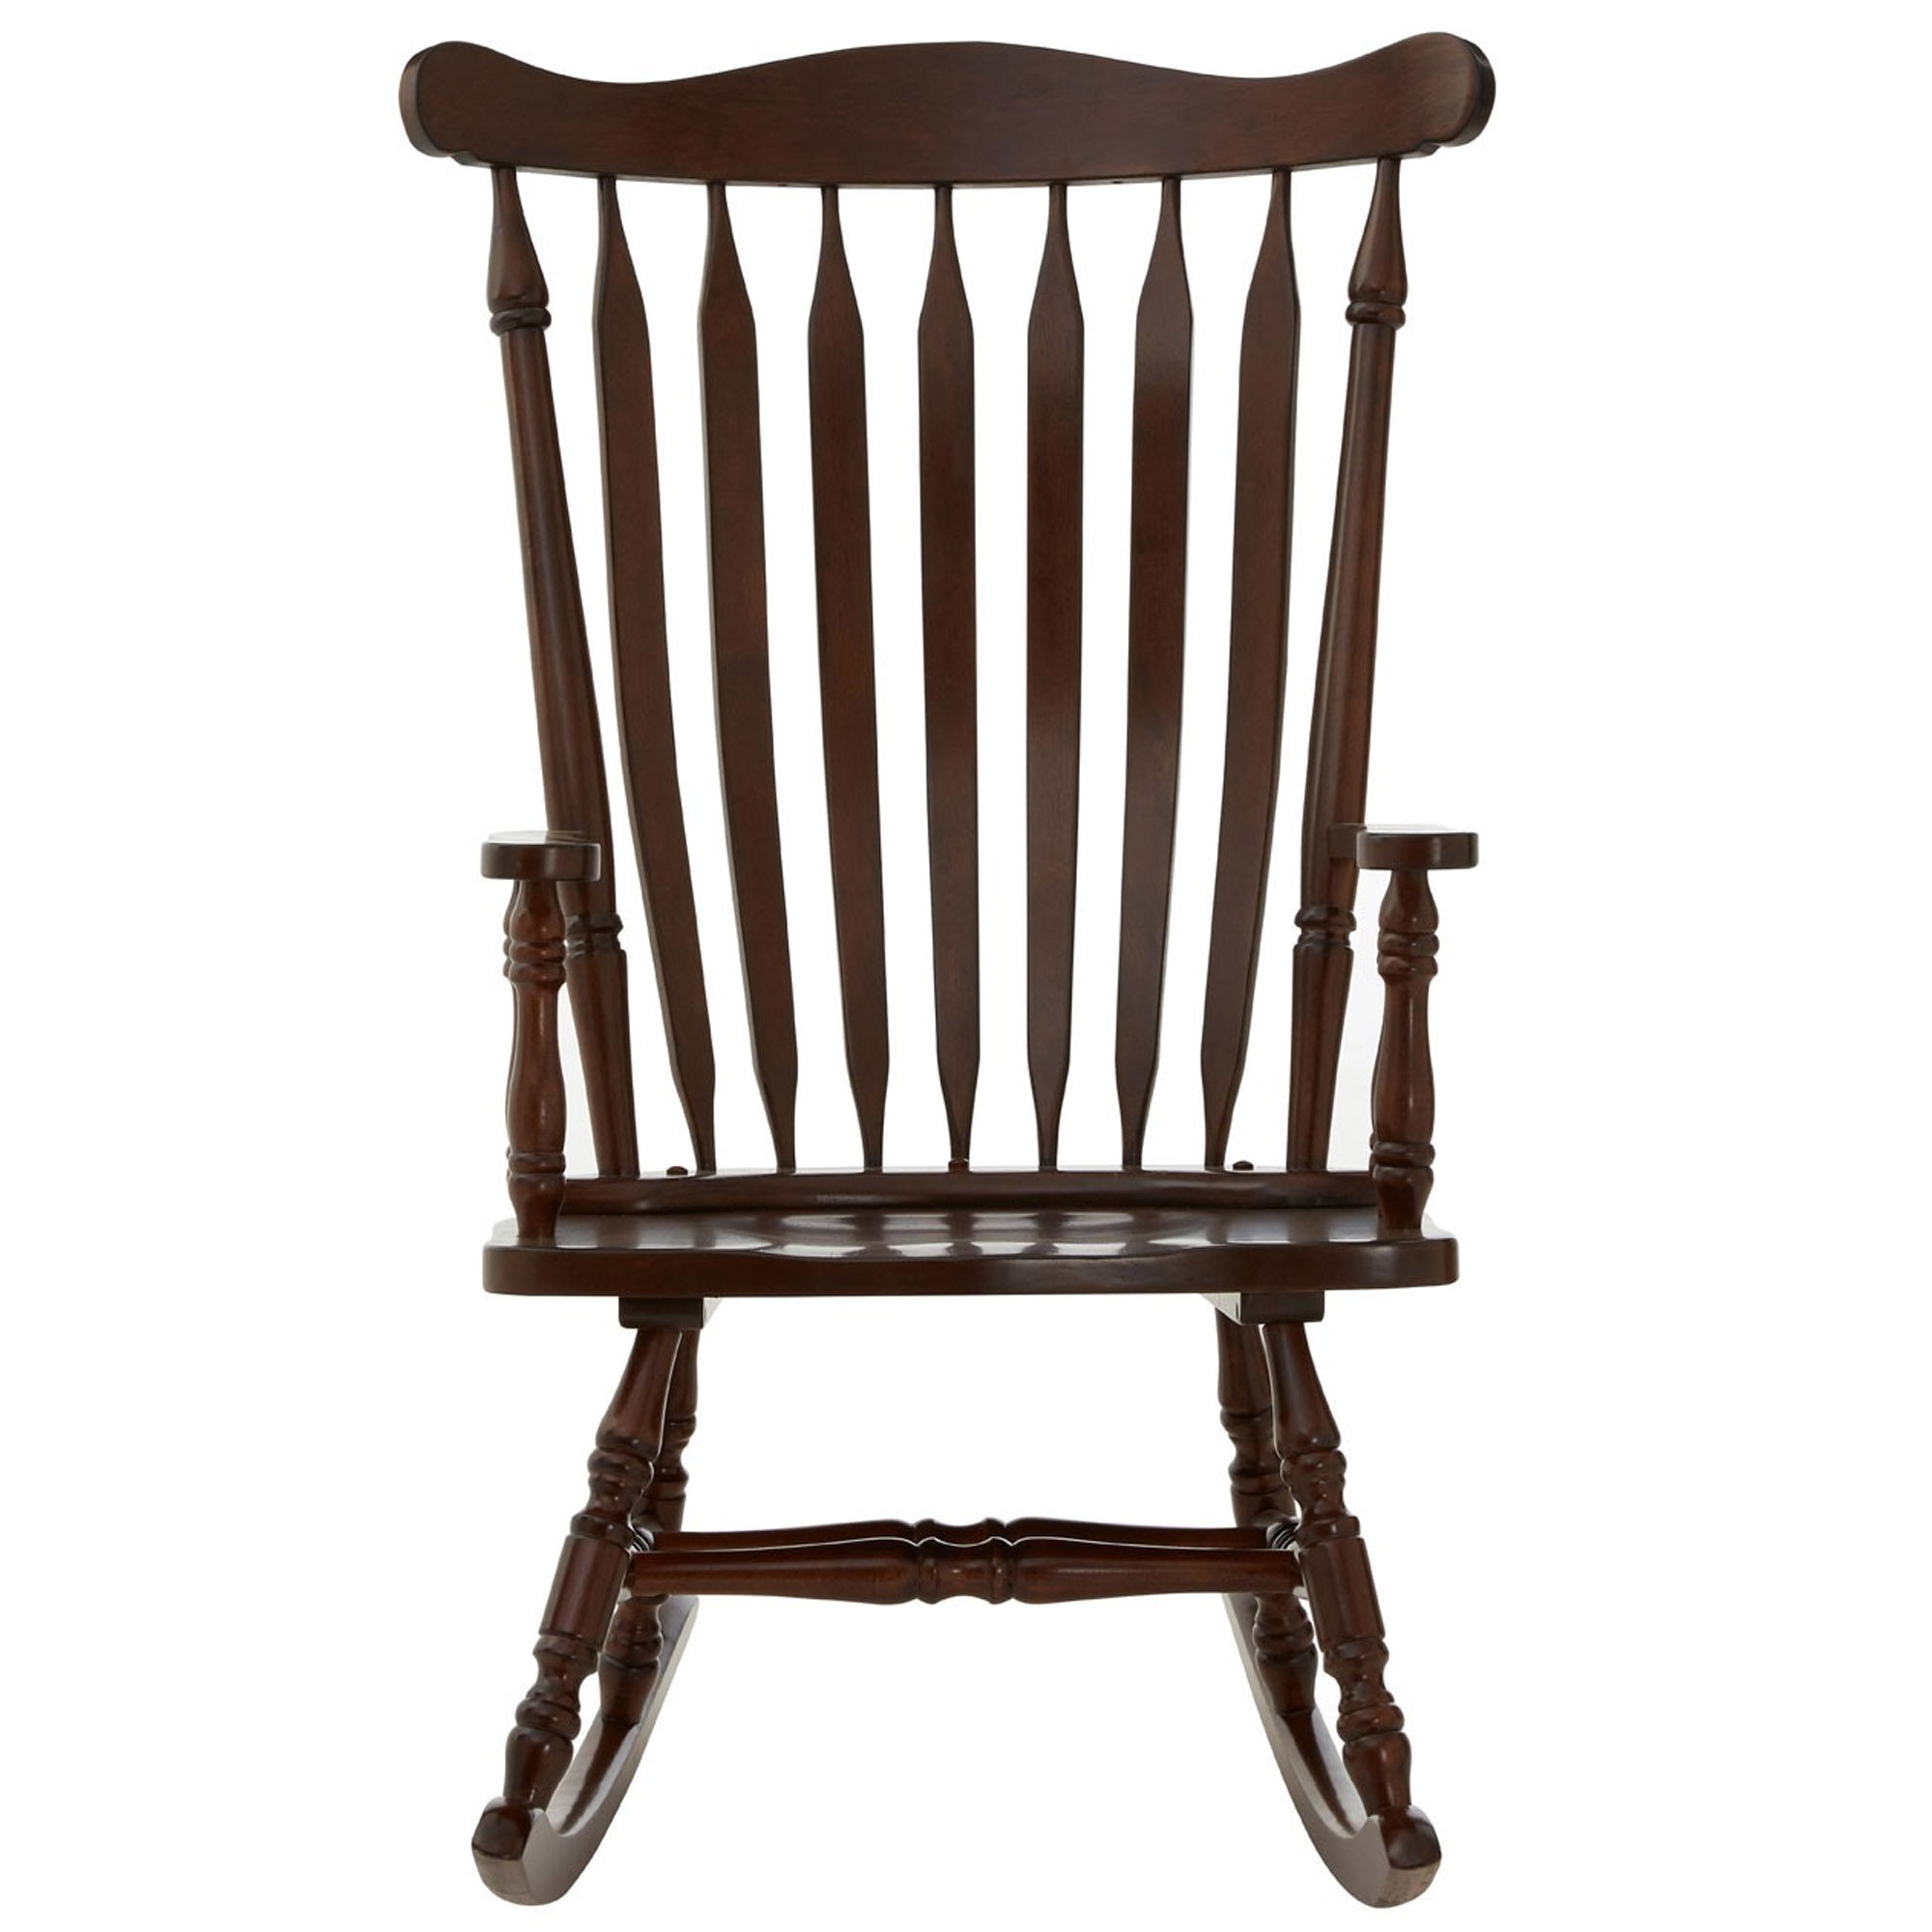 Beau Traditional Rocking Chair